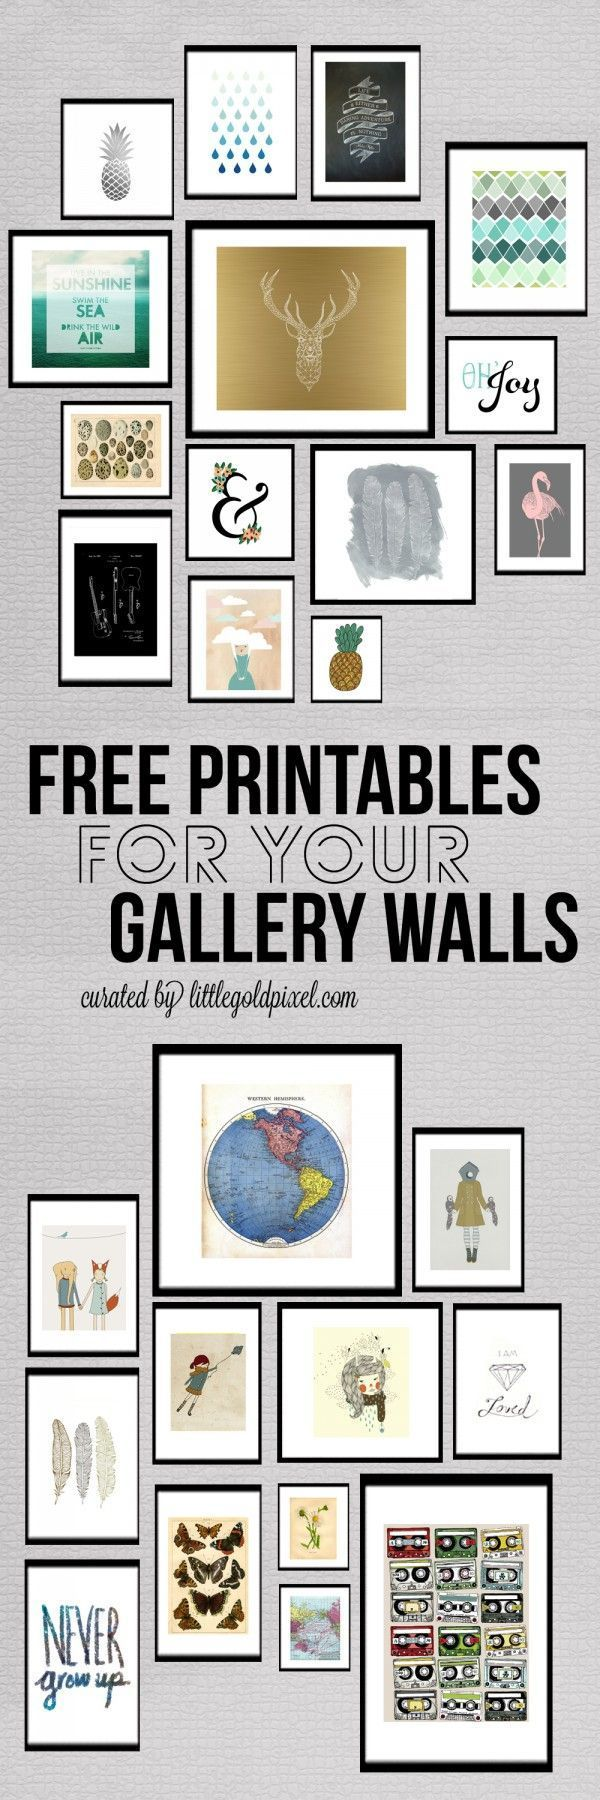 Cheap and Easy DIY Wall Art | Printable Gallery Wall by DIY Ready at http://diyready.com/diy-wall-art-you-can-make-in-under-an-hour/